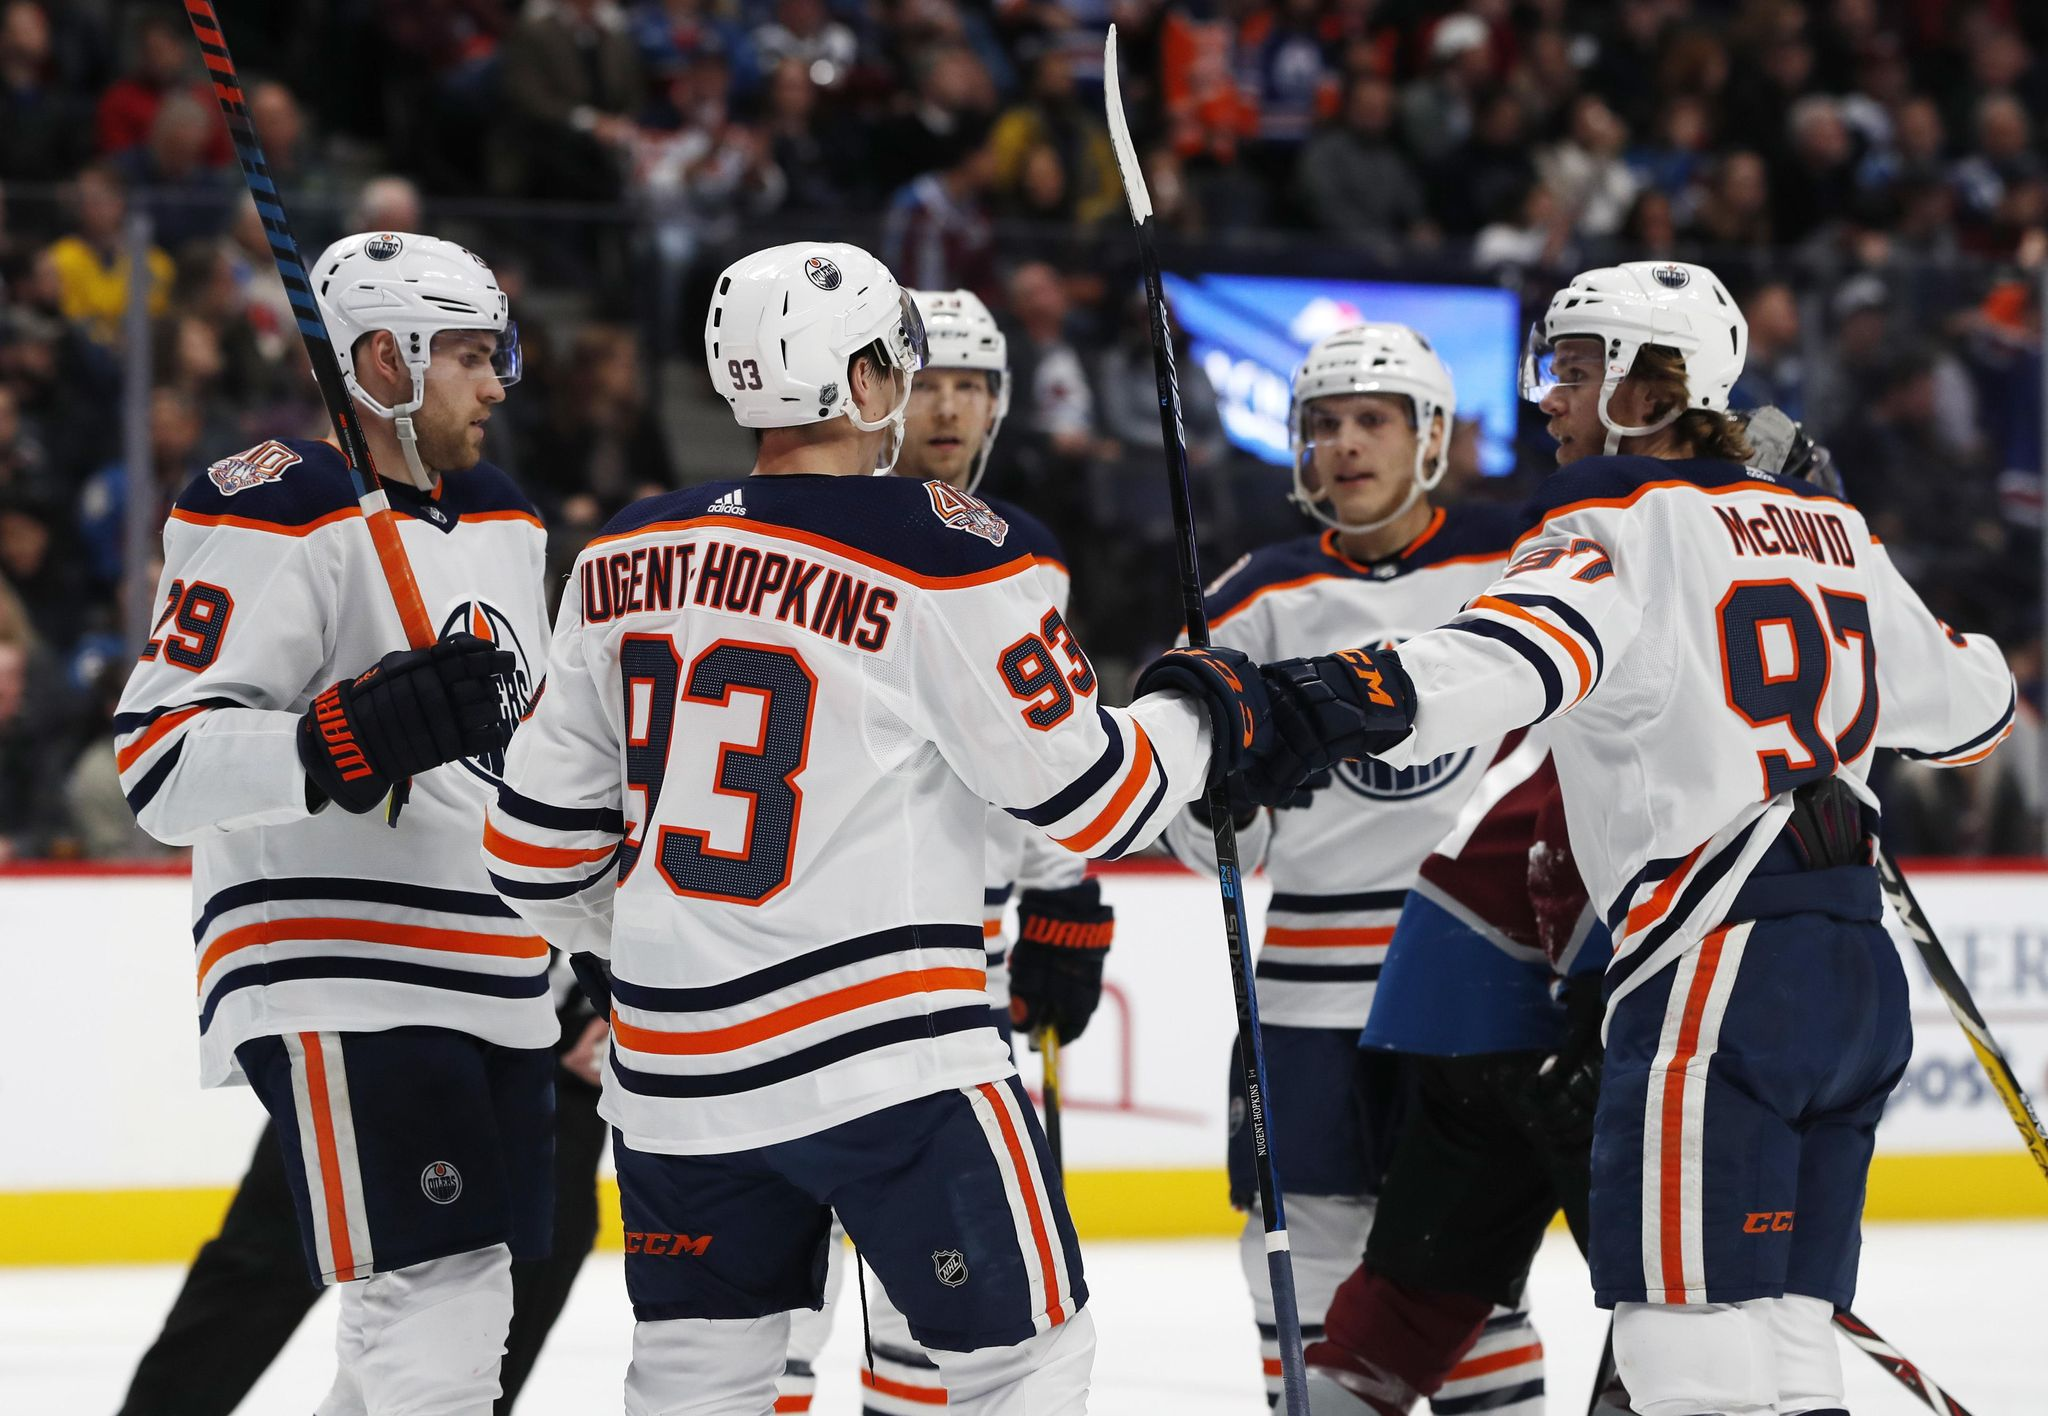 Oilers_avalanche_hockey_54575_s2048x1416